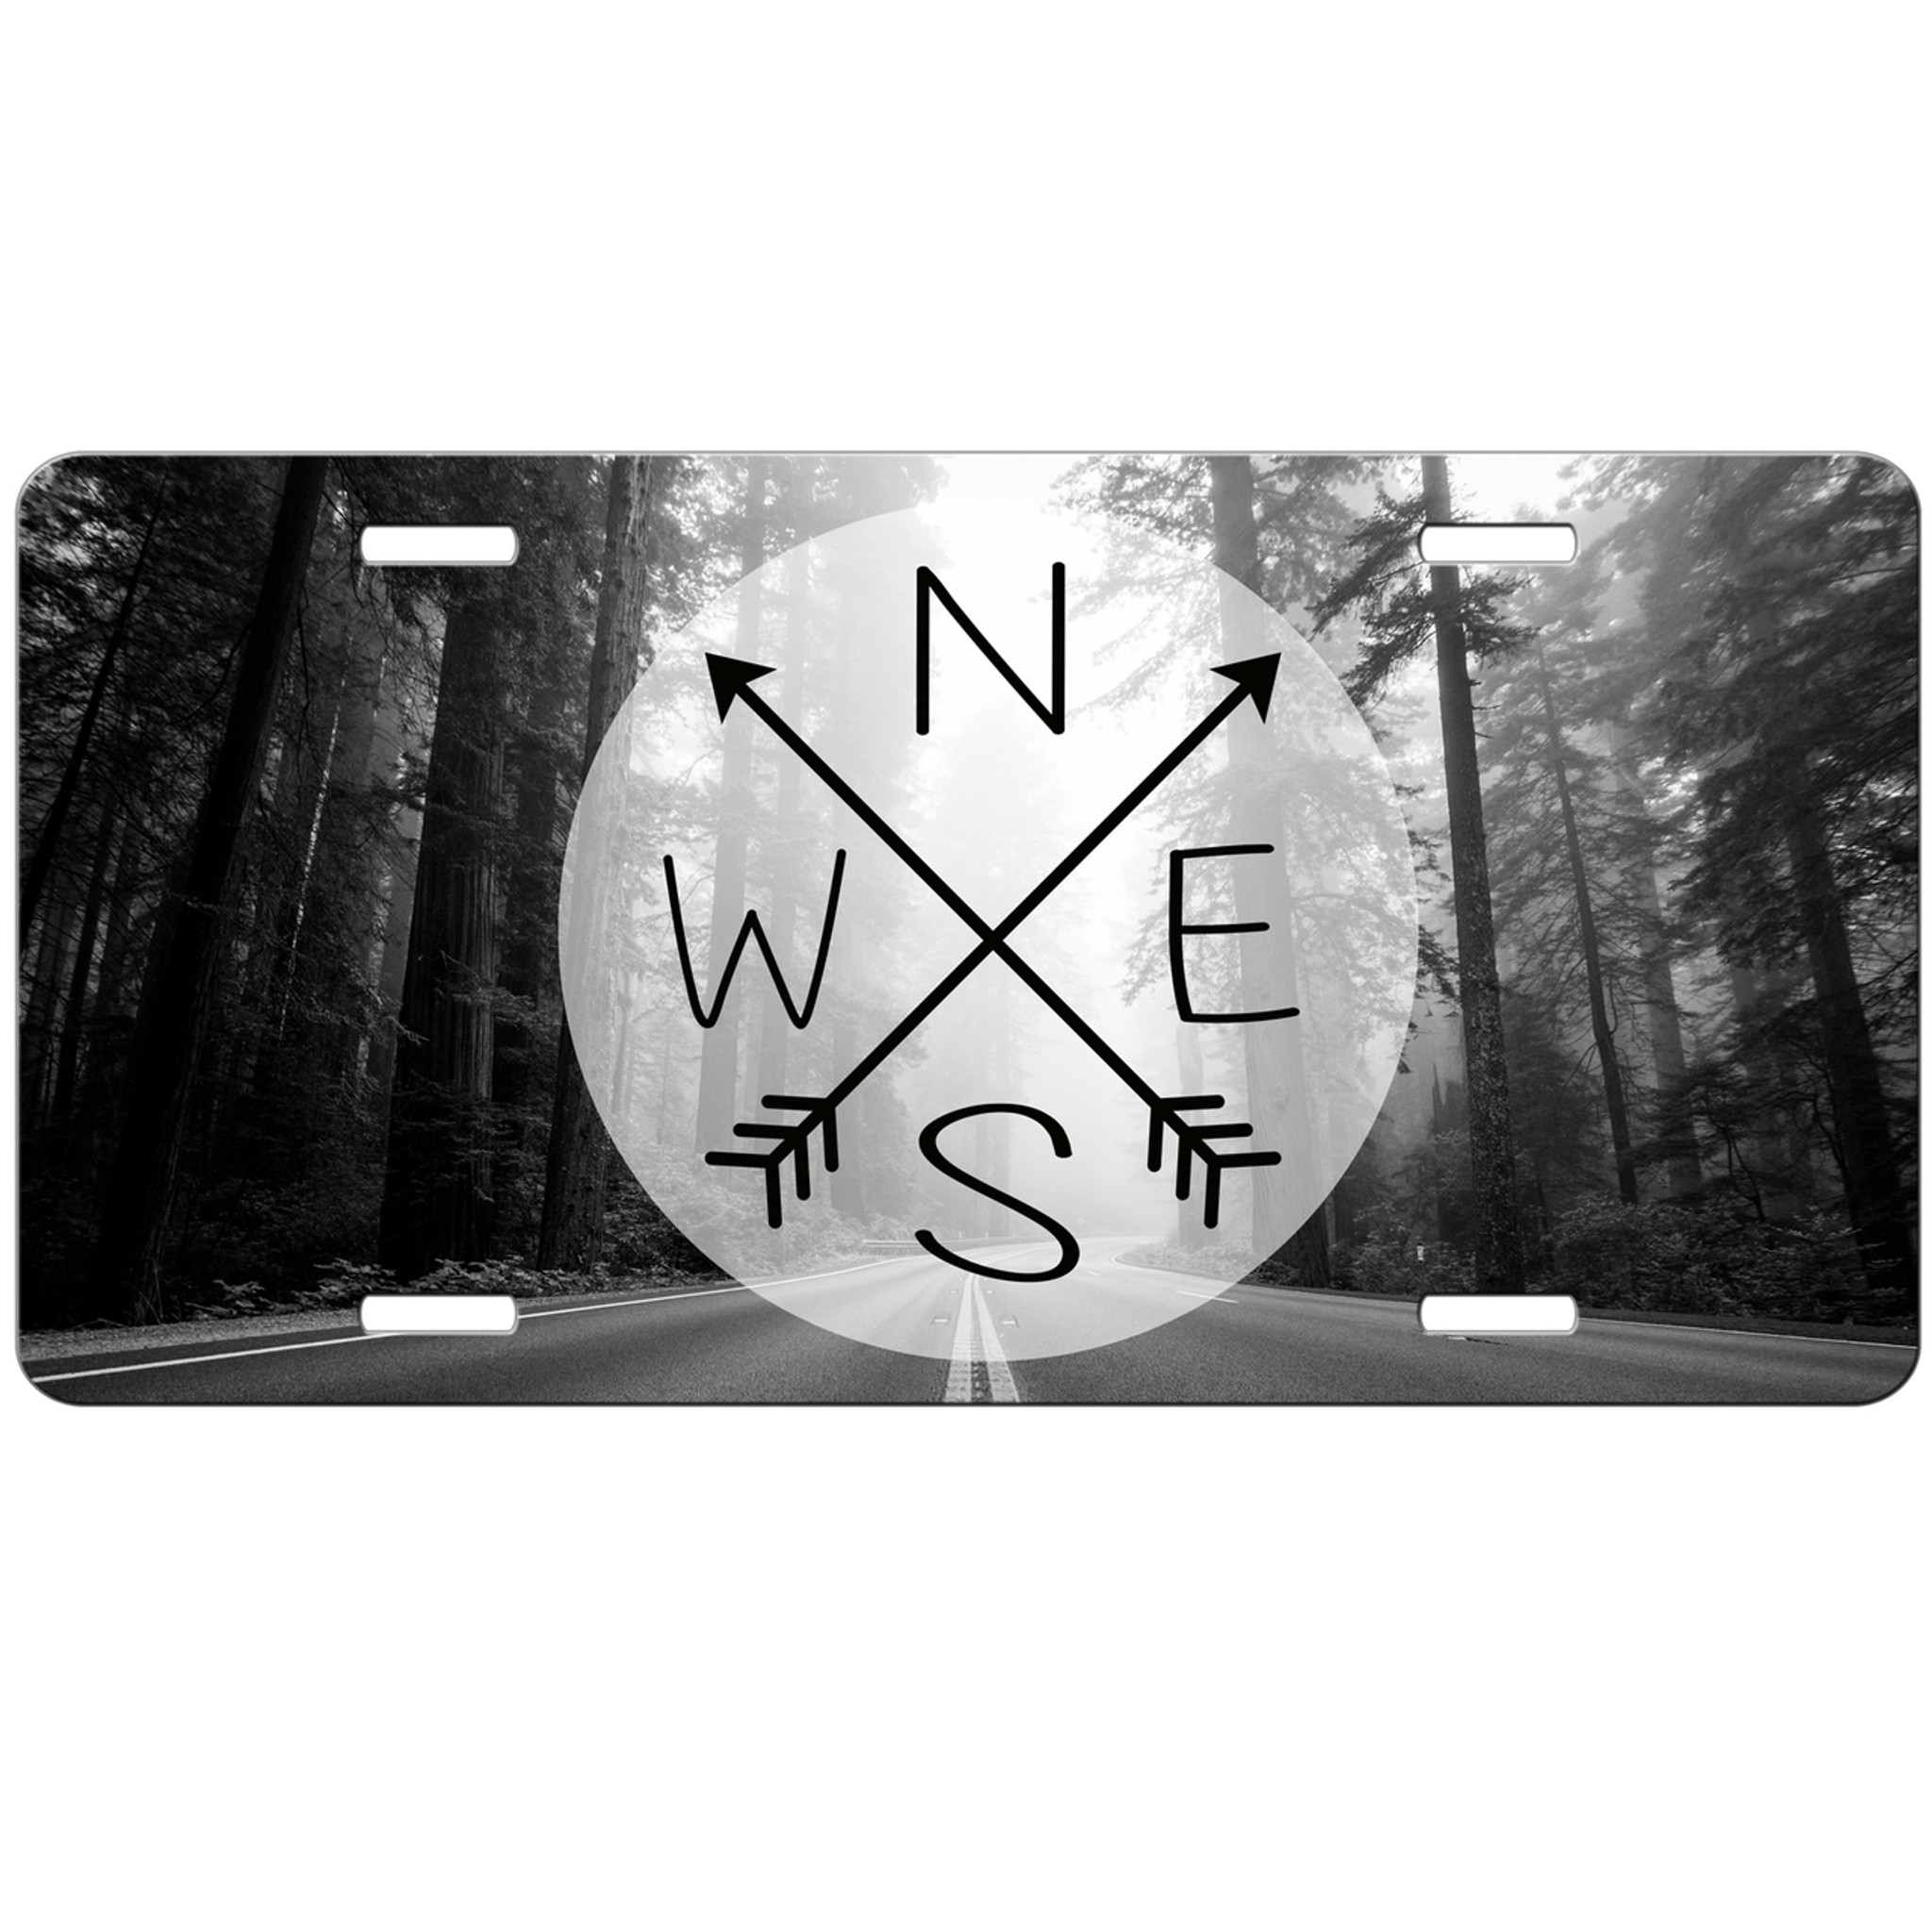 wander compass arrows open road travel wanderlust trees license plate